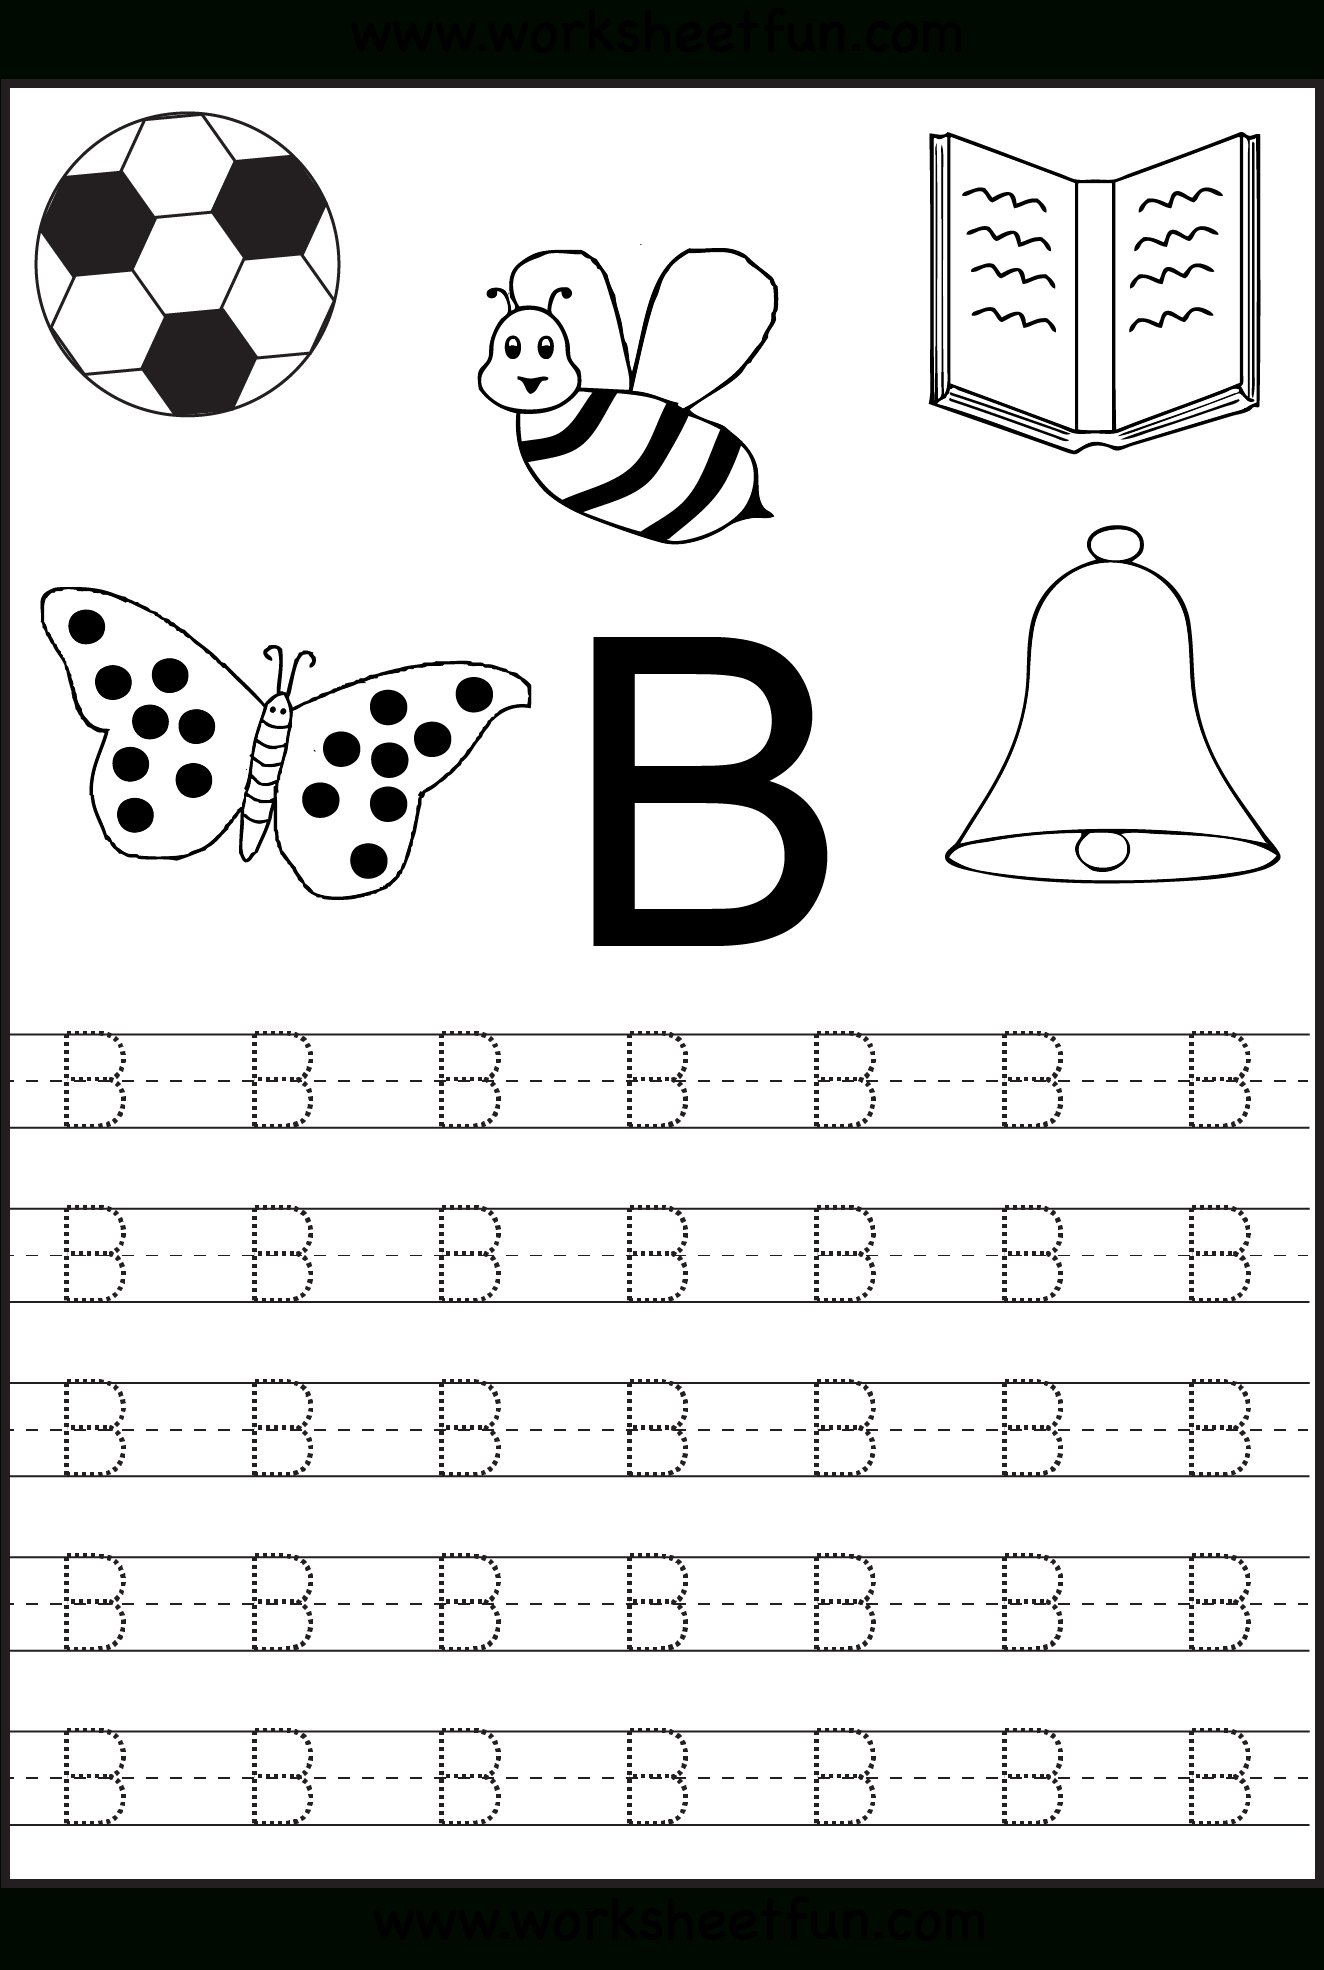 Free Printable Letter Tracing Worksheets For Kindergarten – 26 - Free Printable Letter Tracing